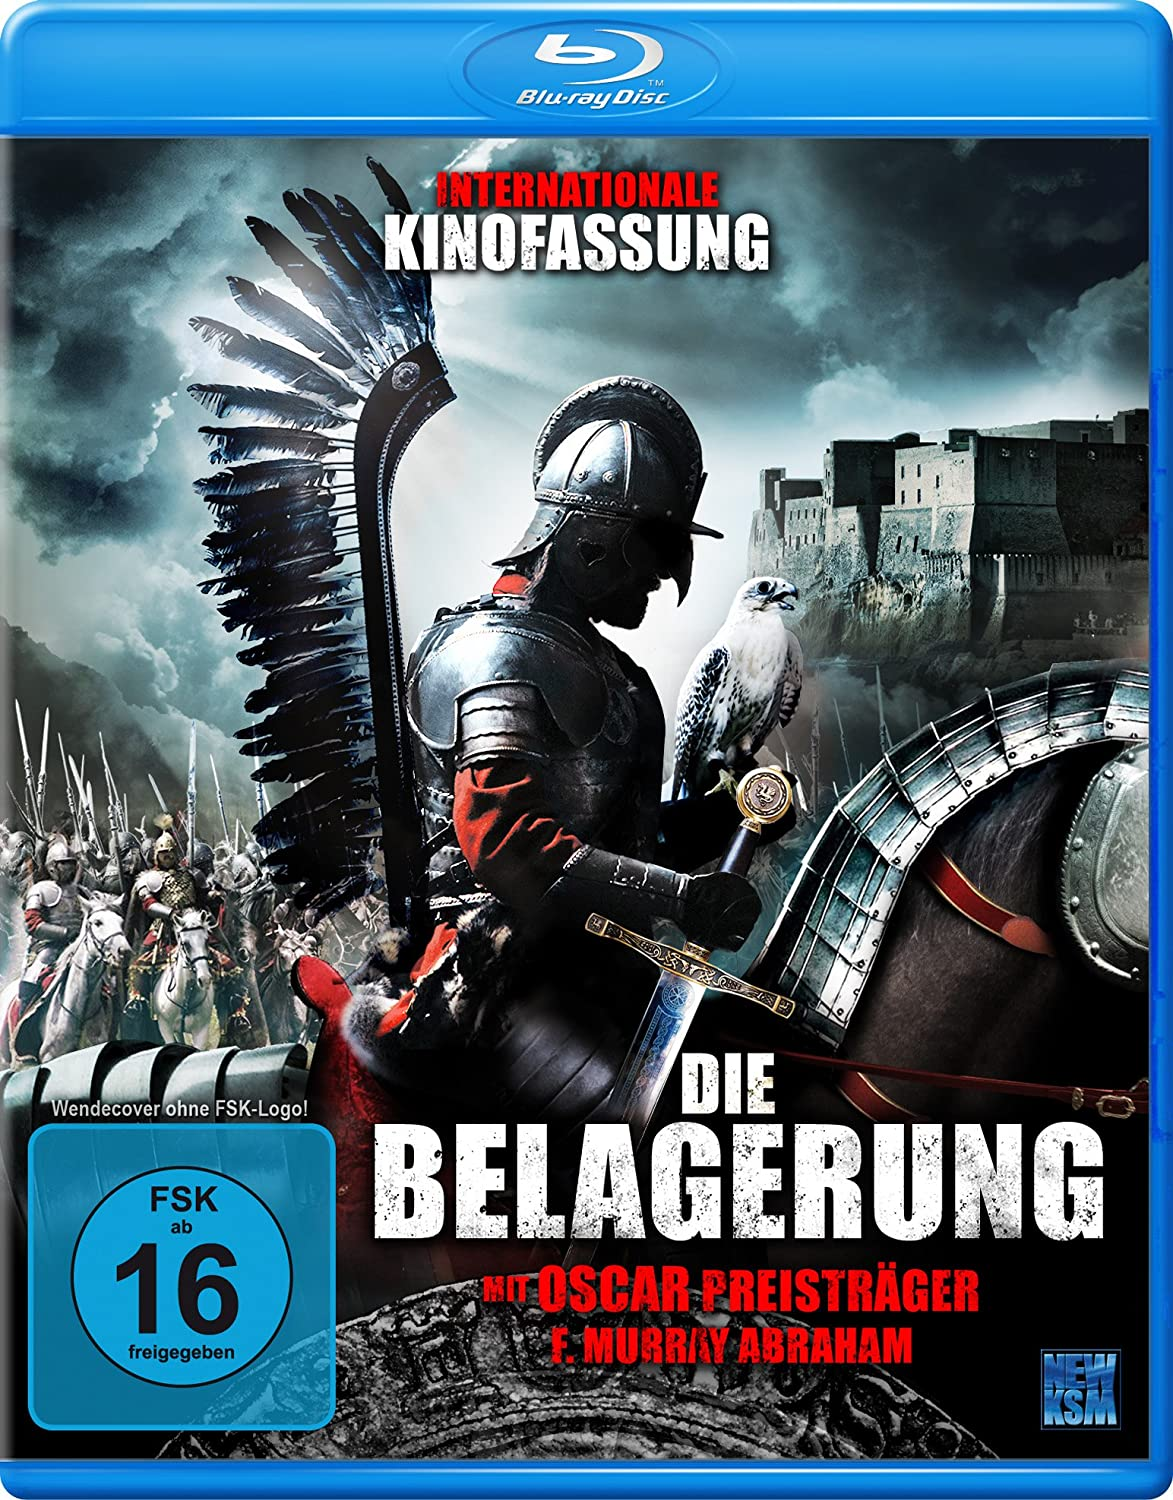 Die Belagerung (Internationale Kinofassung) [Blu-ray]: Amazon.de: F ...